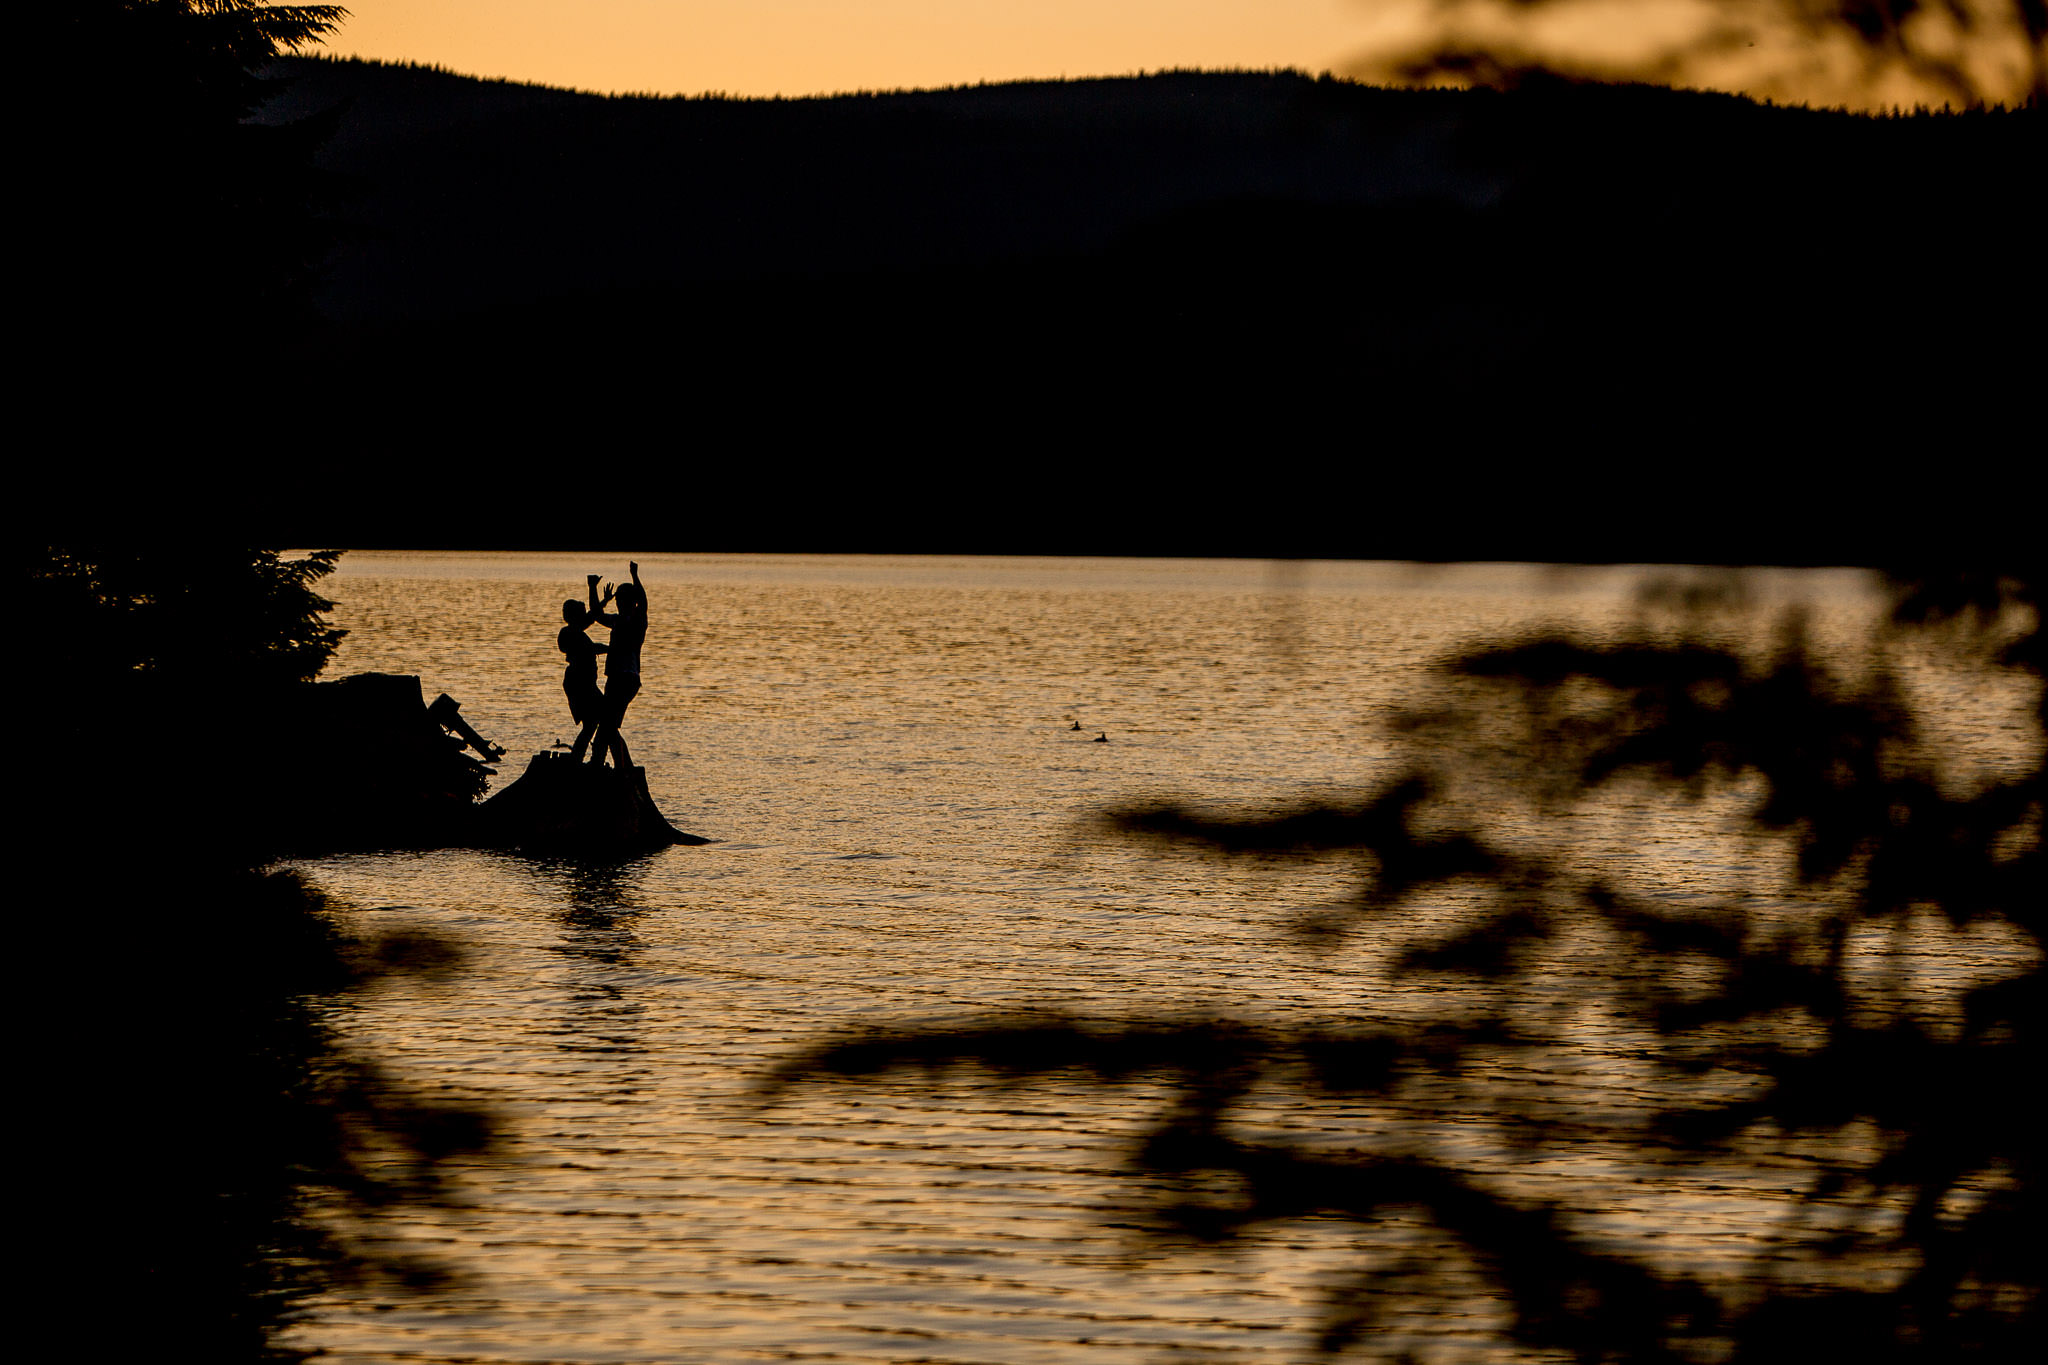 Engagement Photos at Timothy Lake at sunset walking with silhouette dancing